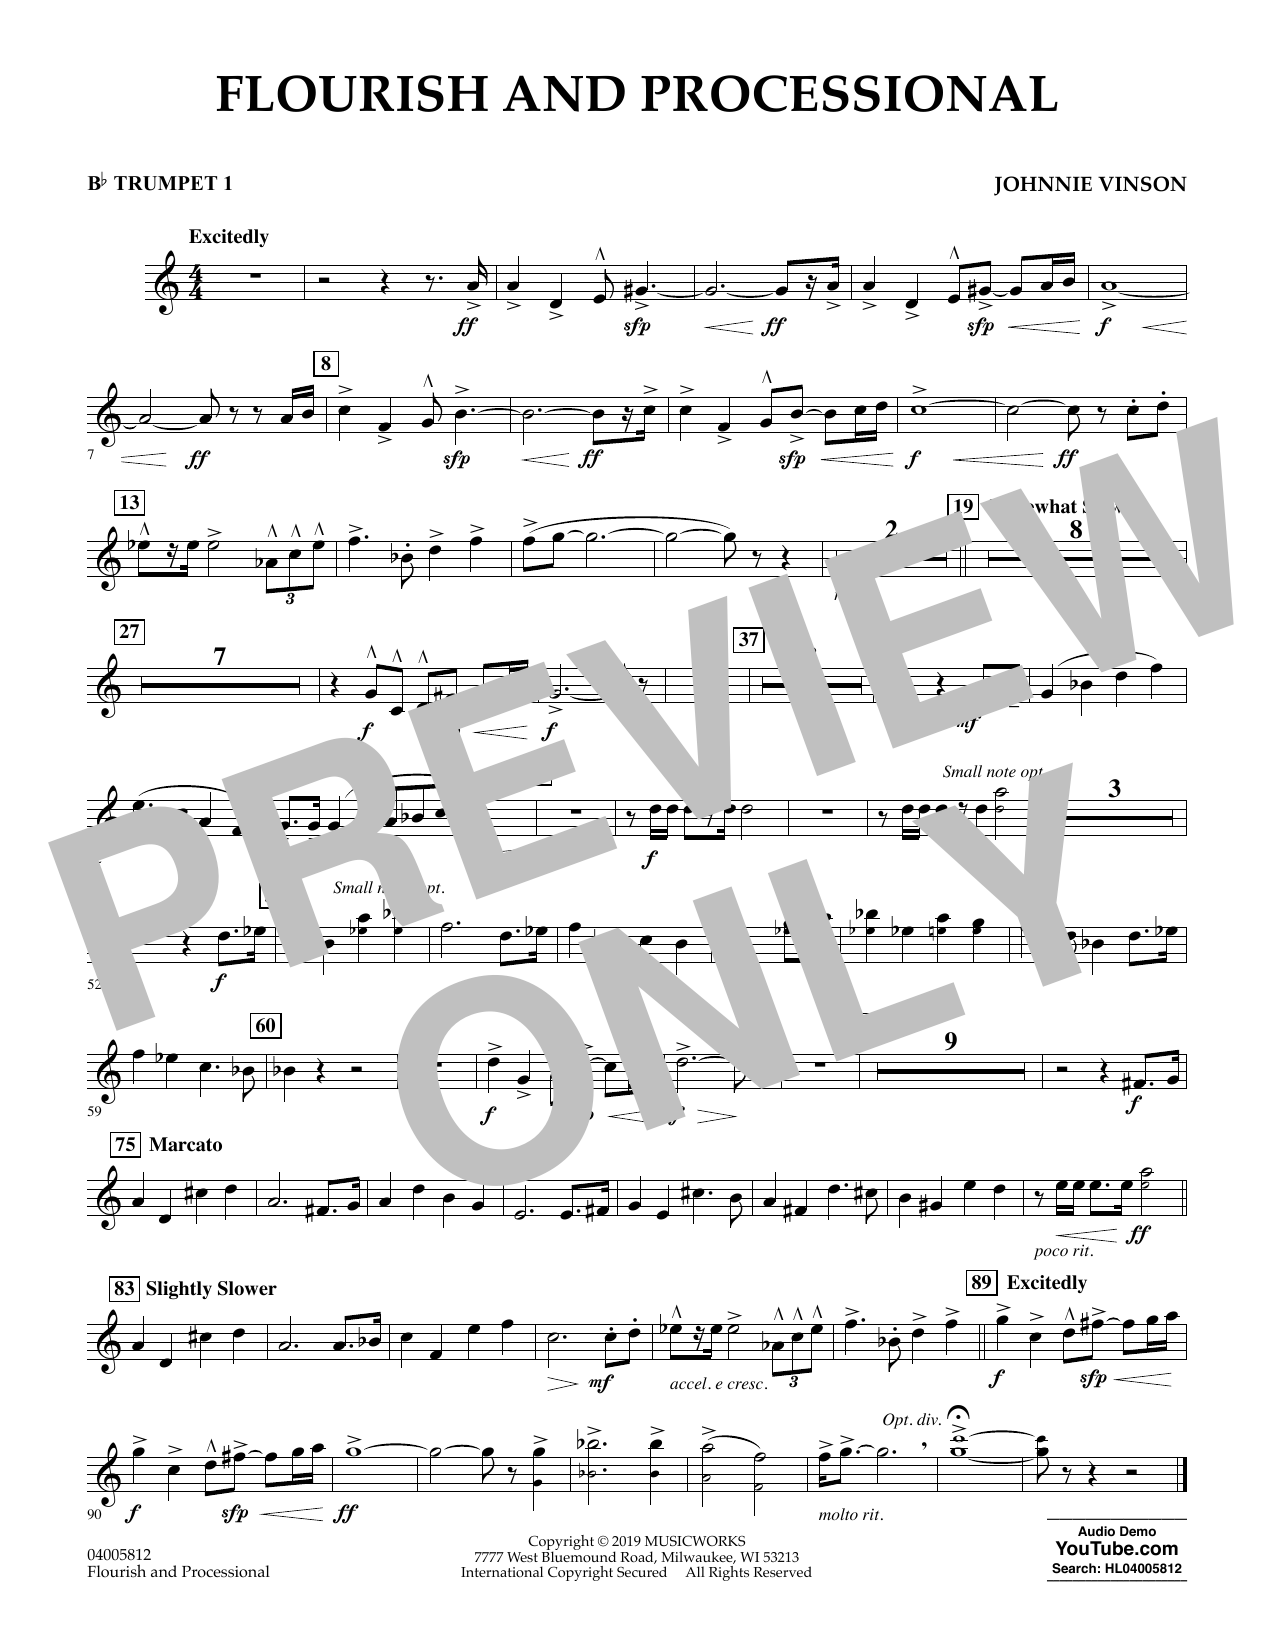 Johnnie Vinson Flourish and Processional - Bb Trumpet 1 sheet music preview music notes and score for Concert Band including 1 page(s)